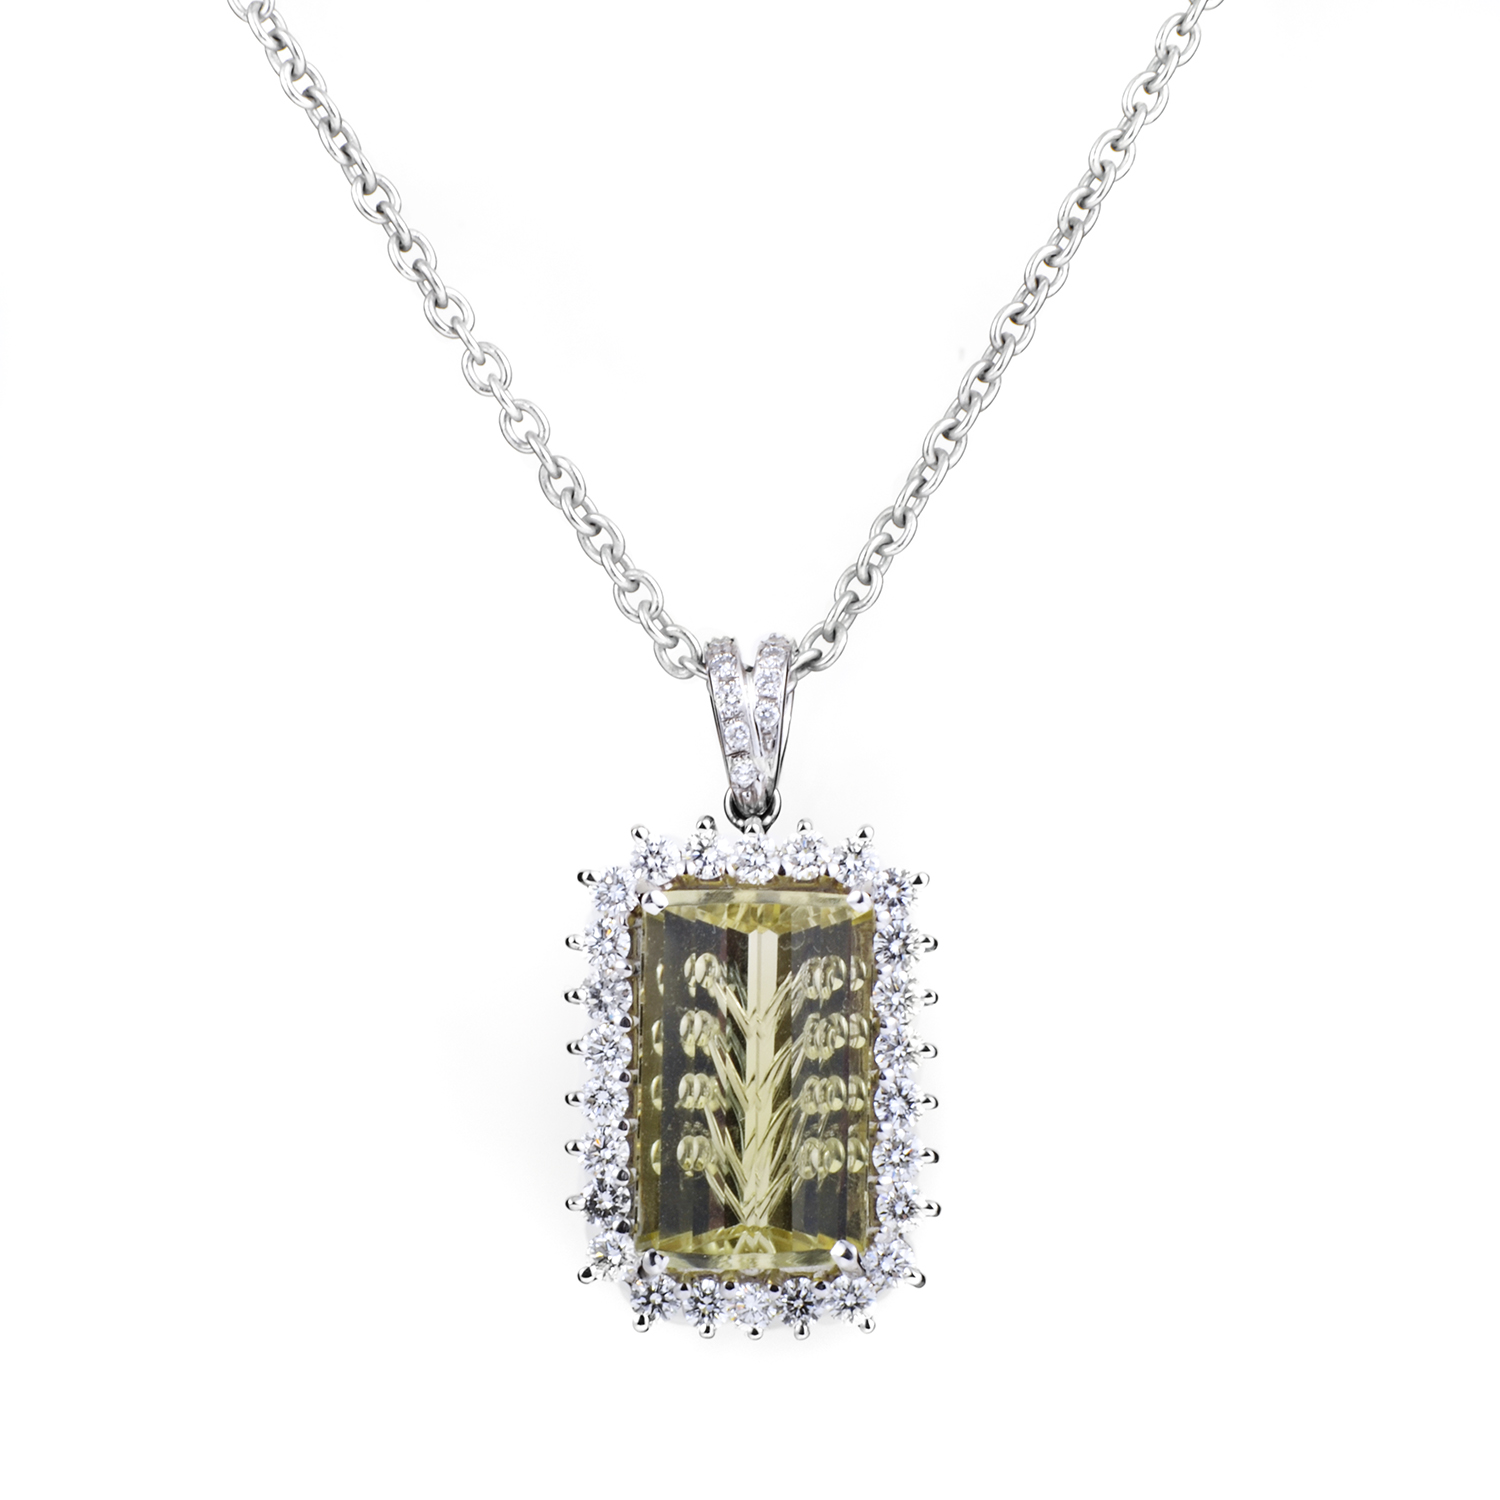 Women's 18K White Gold Diamond & Lemon Quartz Pendant Necklace